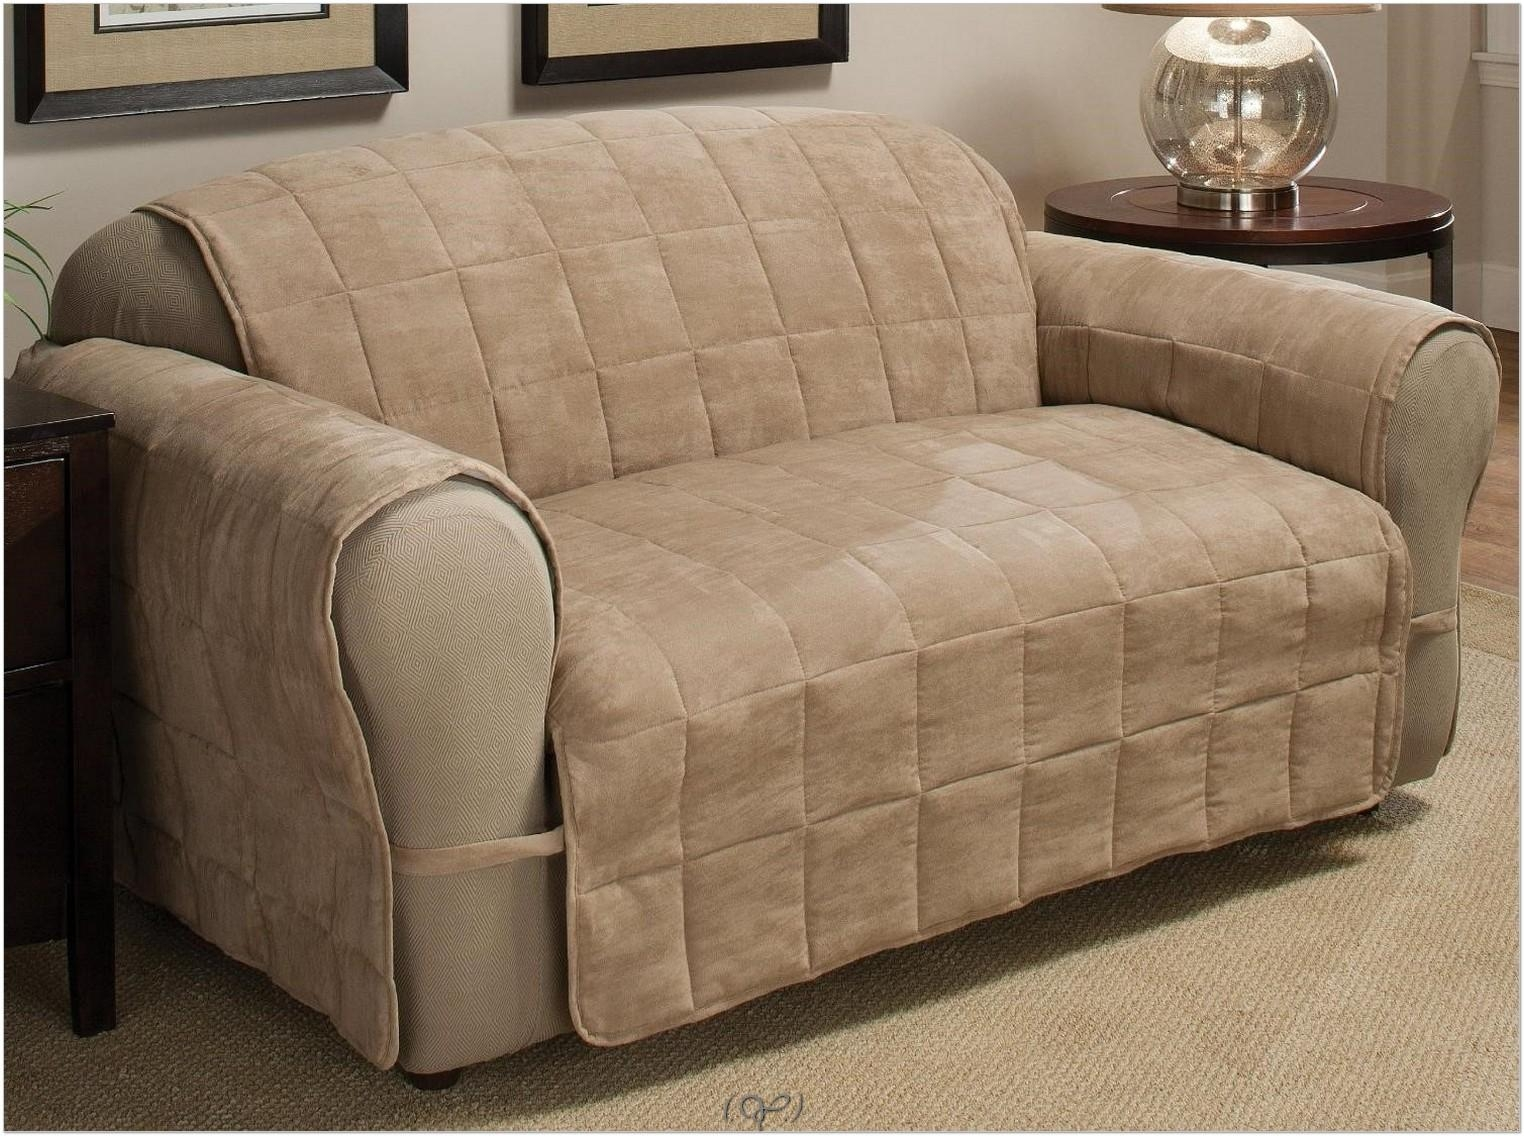 Sofas Center : Used Sofas For Sale Atlanta Indianapolis Inused Regarding Sofas Indianapolis (Image 12 of 20)